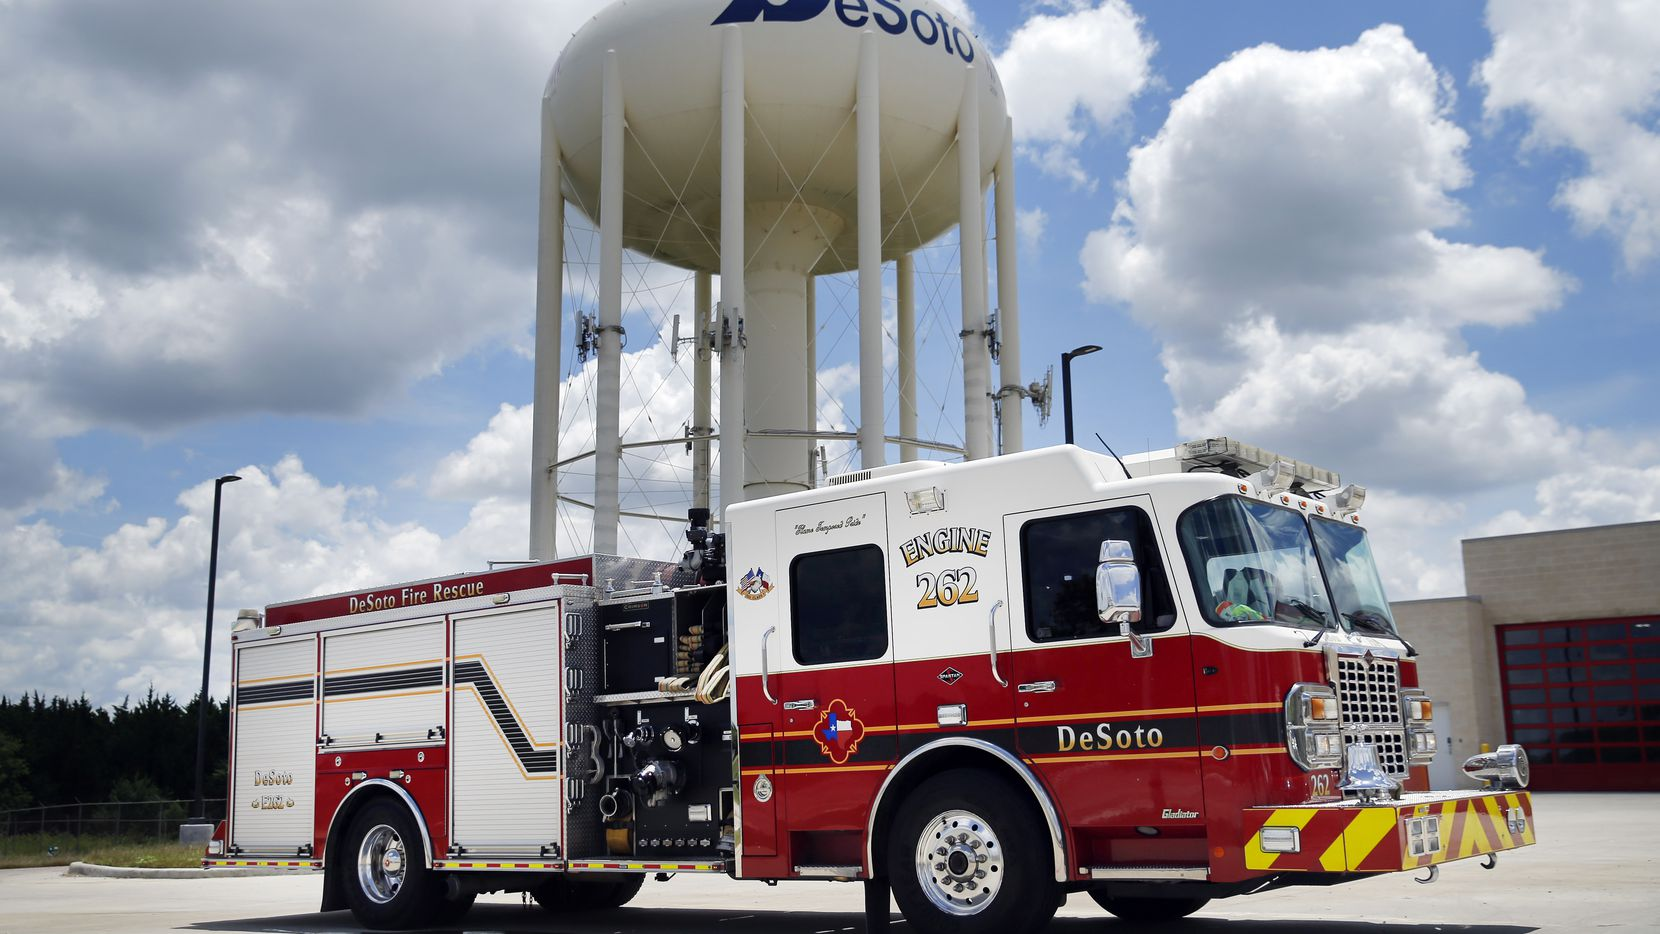 DeSoto announced that its employees are subject to daily testing to ensure the workforce remains intact, unaffected by the coronavirus and to provide services to the community. First responders, such as the fire department, are tested daily, while other city employees are tested twice a week.